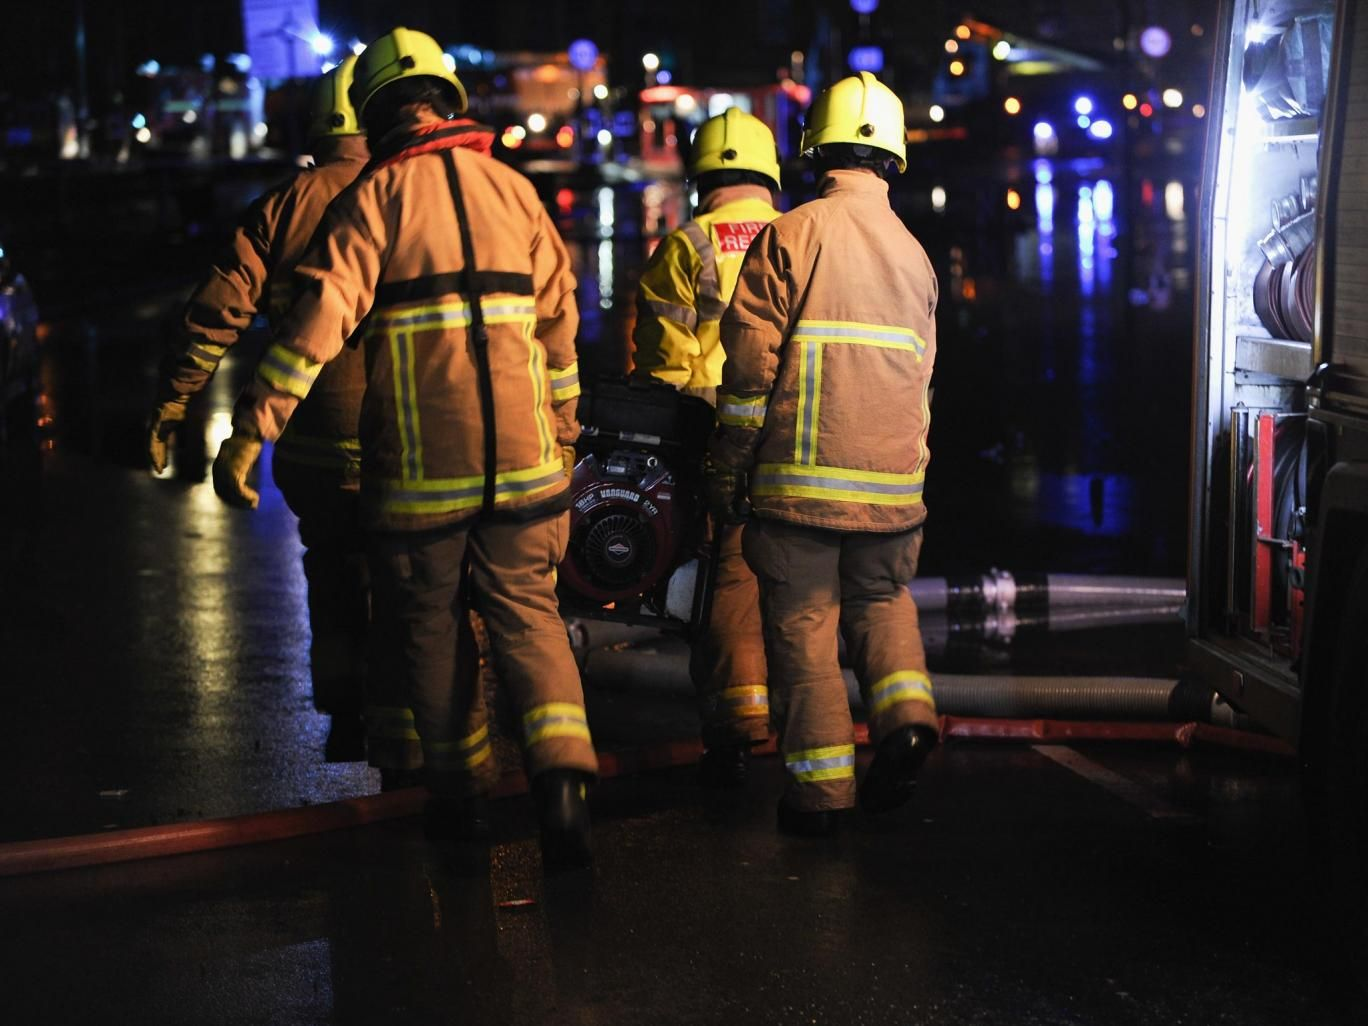 #union #occupy #p2 #tlot #Syriac #FSA #Kurd #Baloch   Firefighters' union FBU re-affiliates with Labour, citing Jeremy Corbyn's leadership  http://www.independent.co.uk/news/uk/politics/firefighters-union-fbu-re-affiliates-with-labour-citing-jeremy-corbyns-leadership-a6751901.html  General secretary Matt Wrack said Jeremy Corbyn had a long record of supporting firefighters  The union representing firefighters has voted to reaffiliate with the Labour party after a decade apart from it...